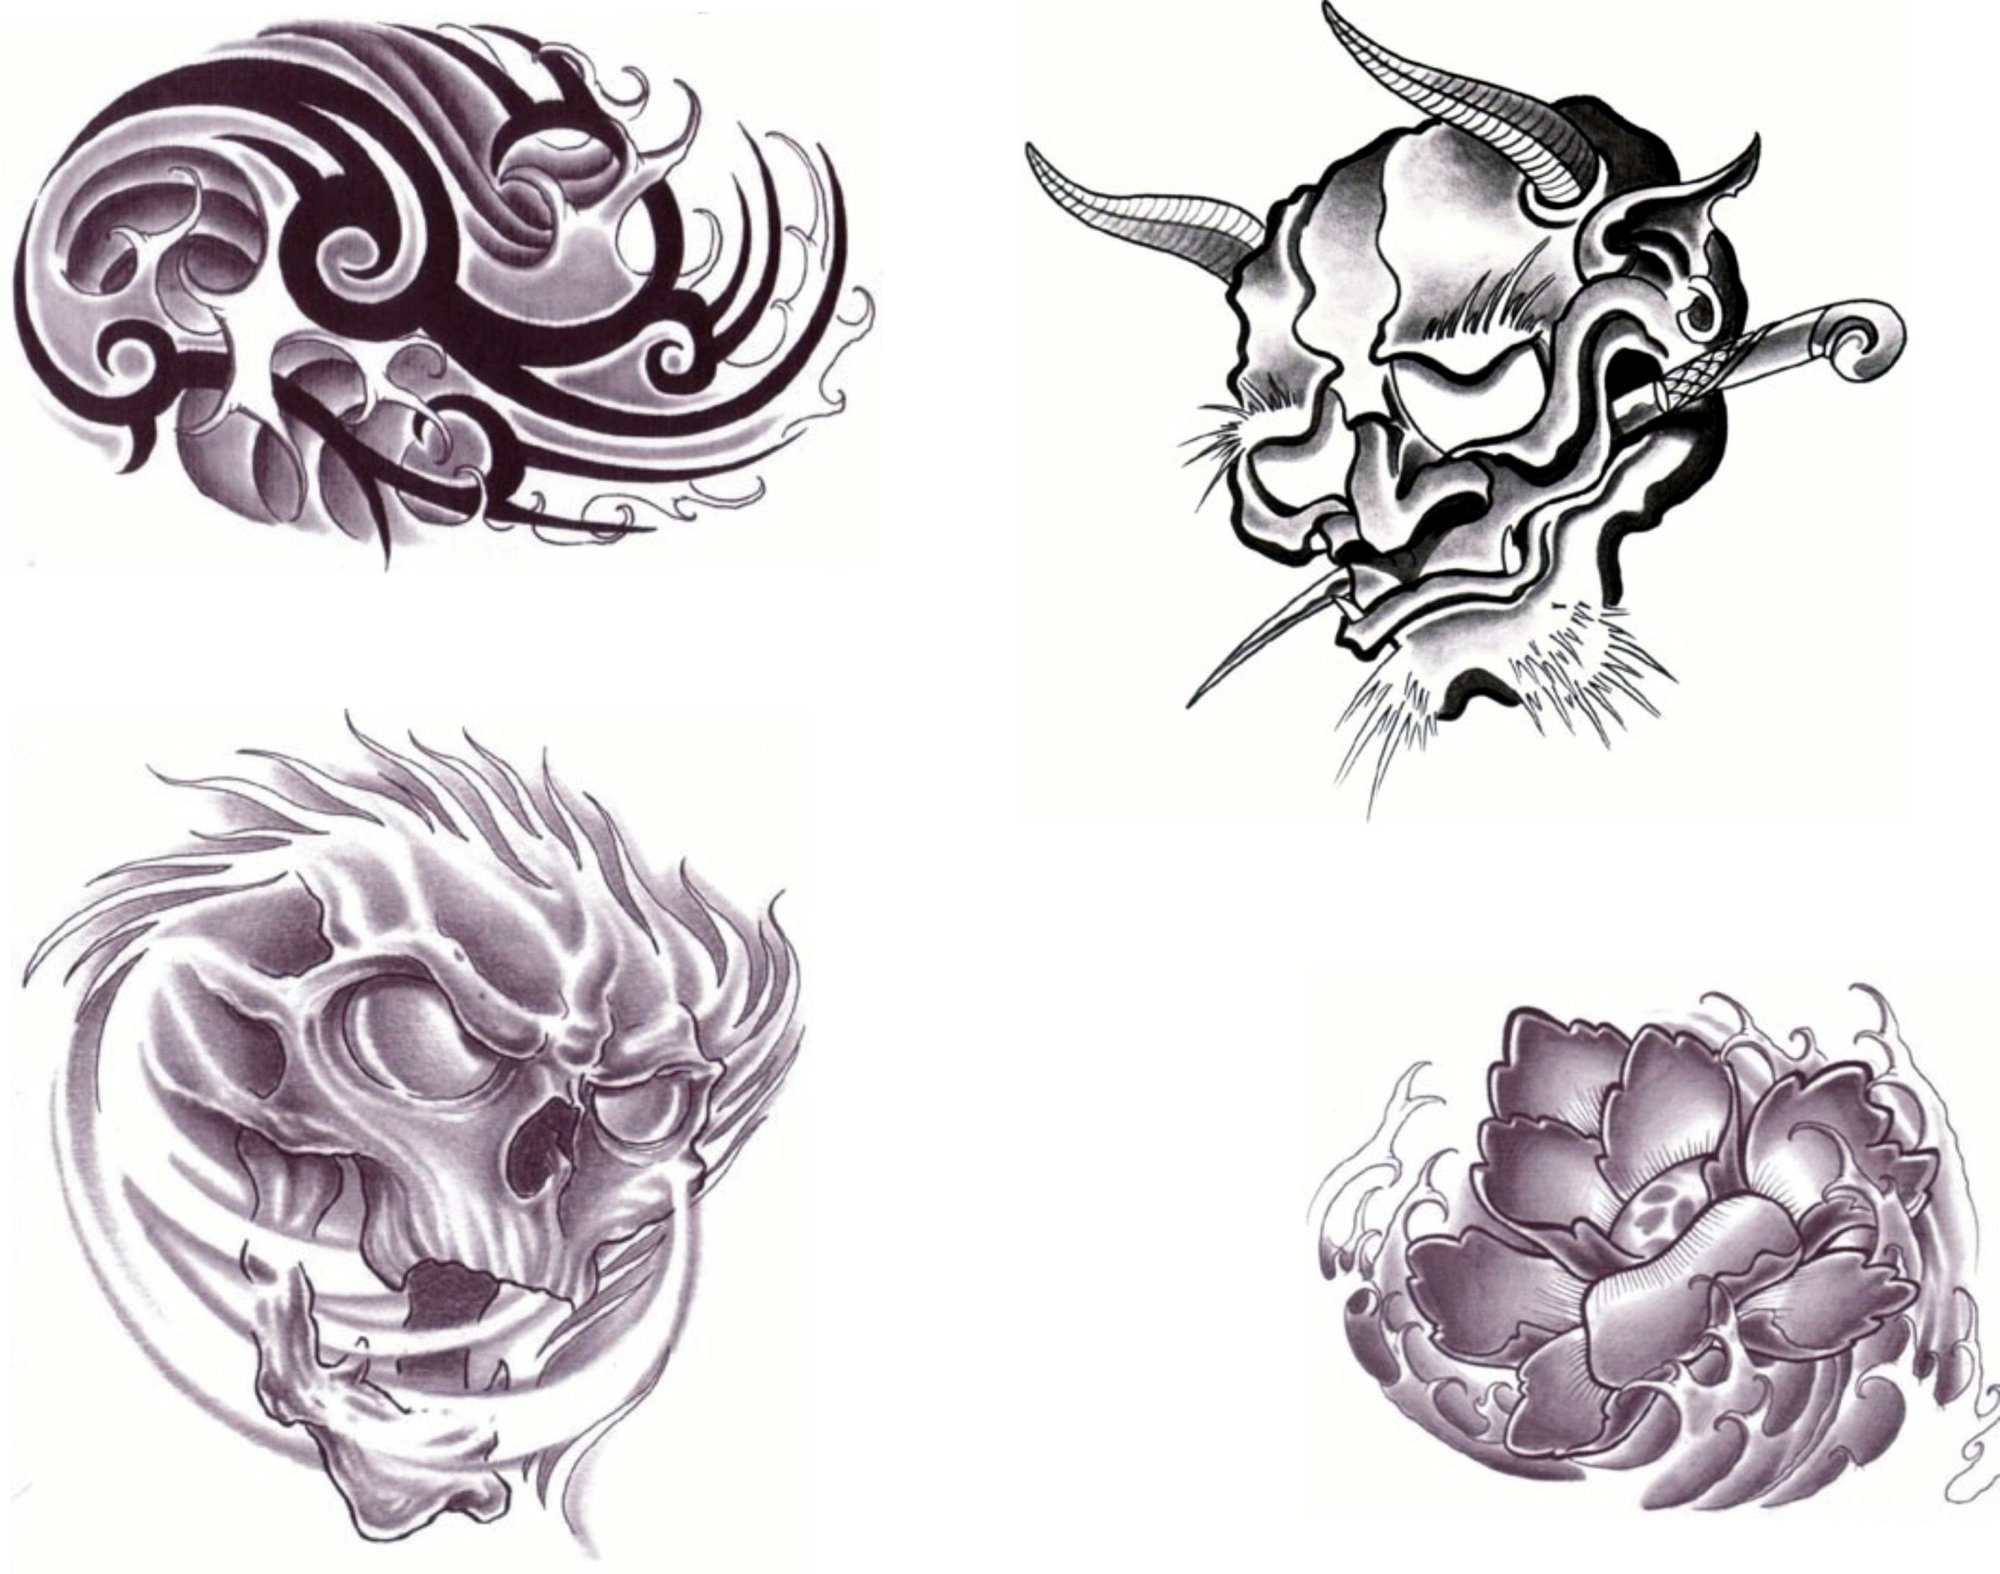 Unique Tattoo Designs Gallery More Than 500 Tattoo Ideas Ideas And Designs